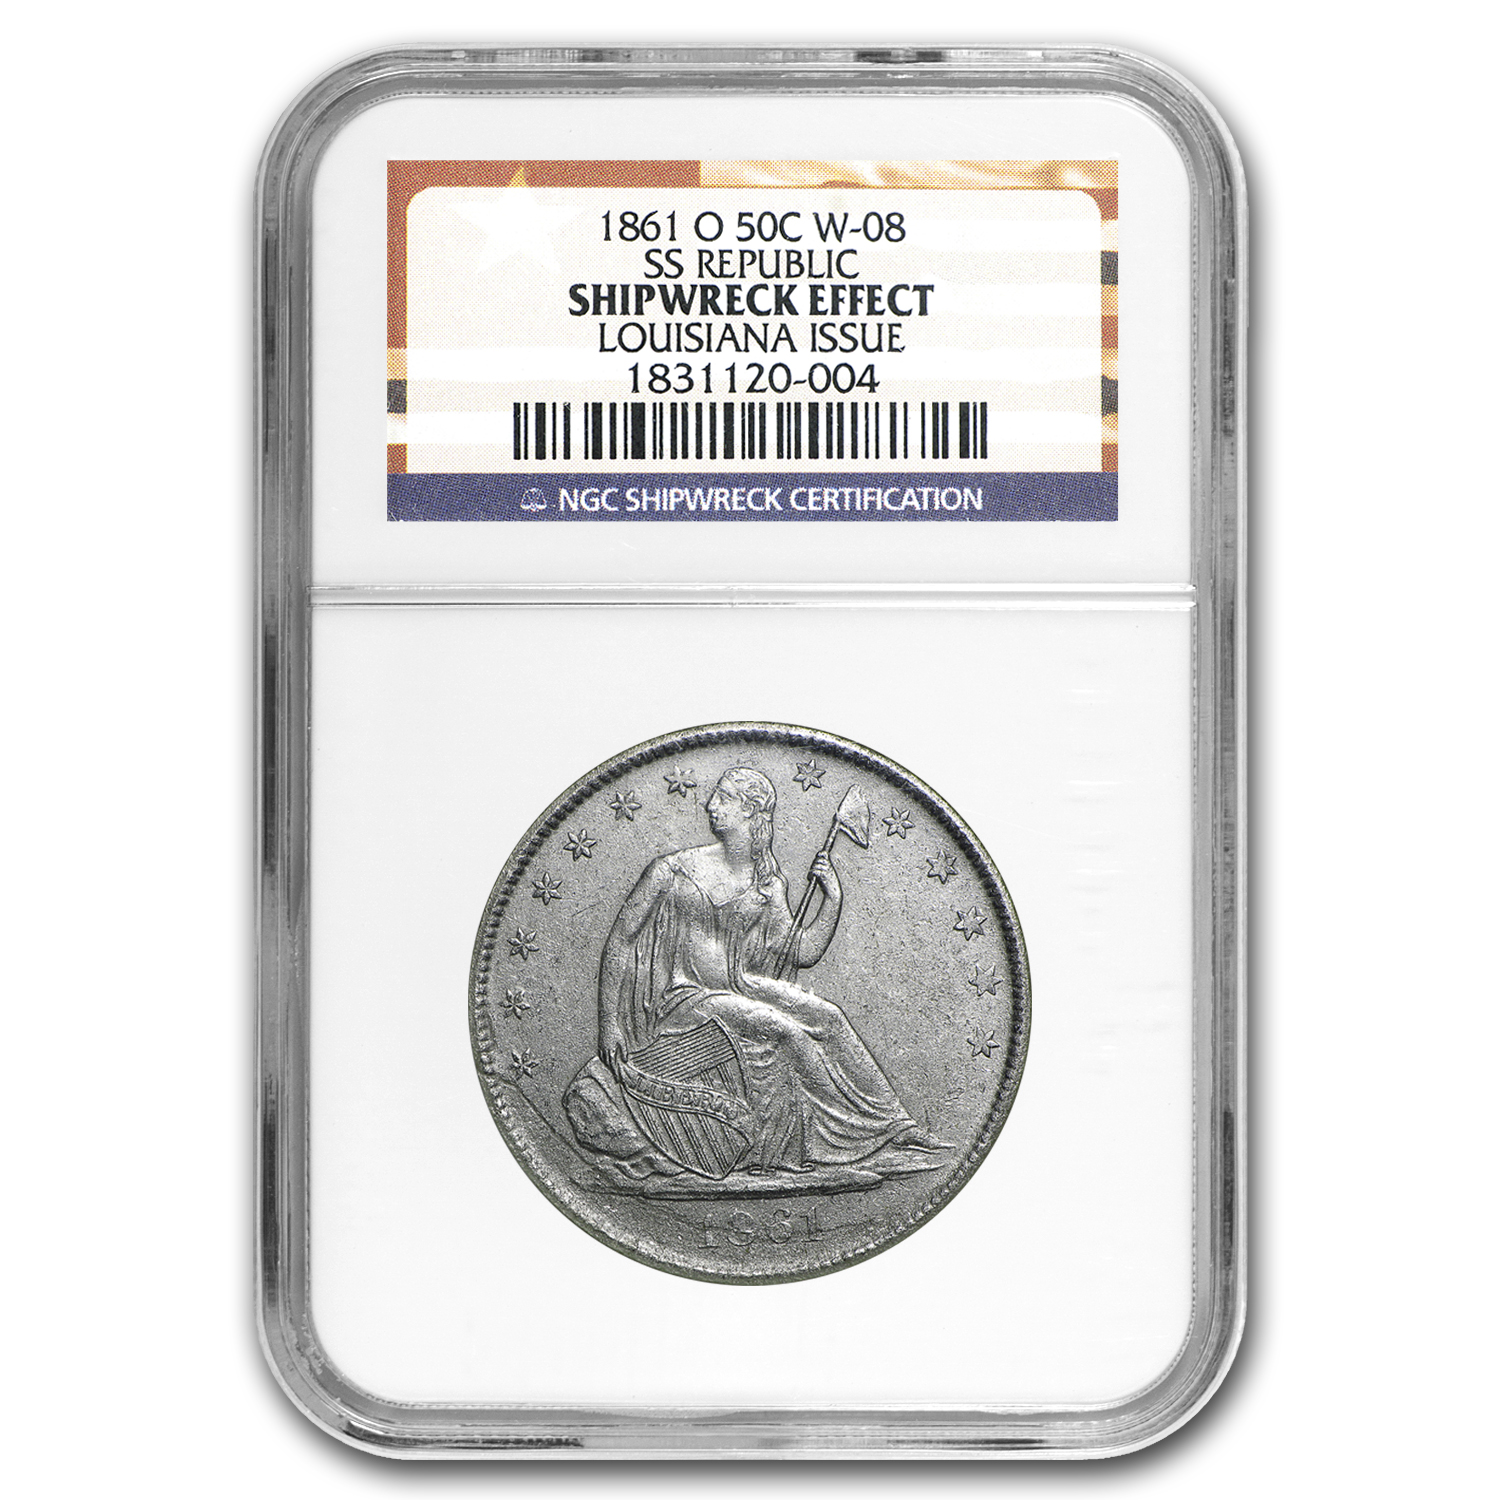 1861-O Liberty Seated Half Genuine NGC (SS-Republic Shipwreck)